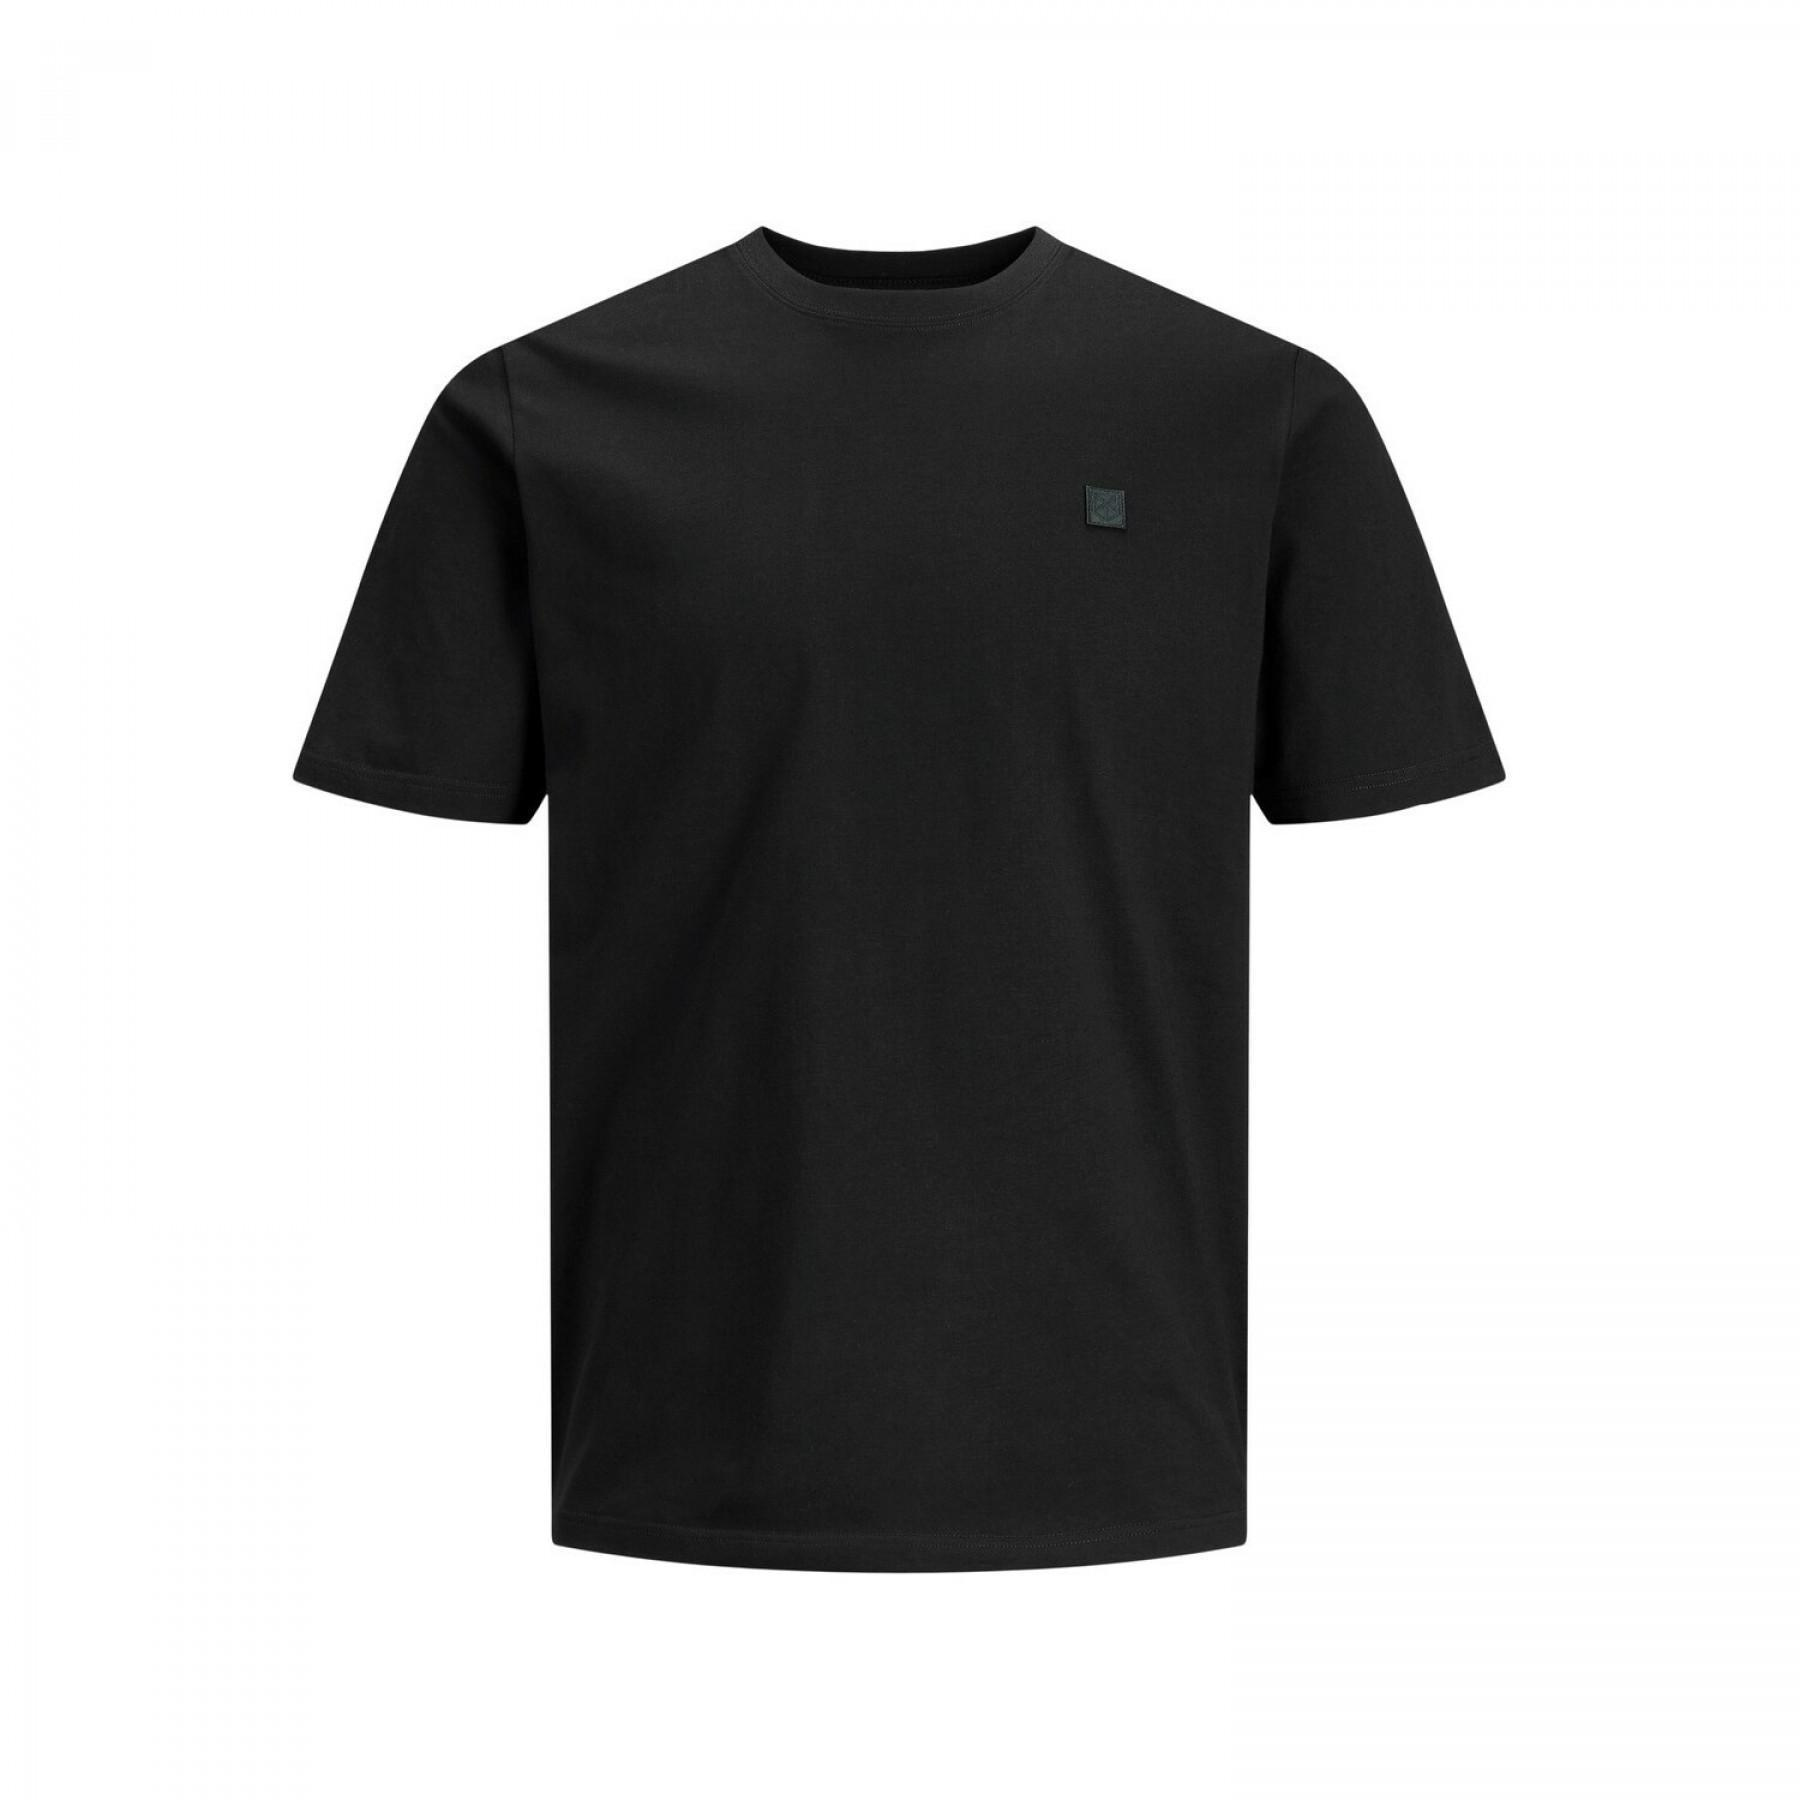 Jack & Jones Blastudio T-shirt